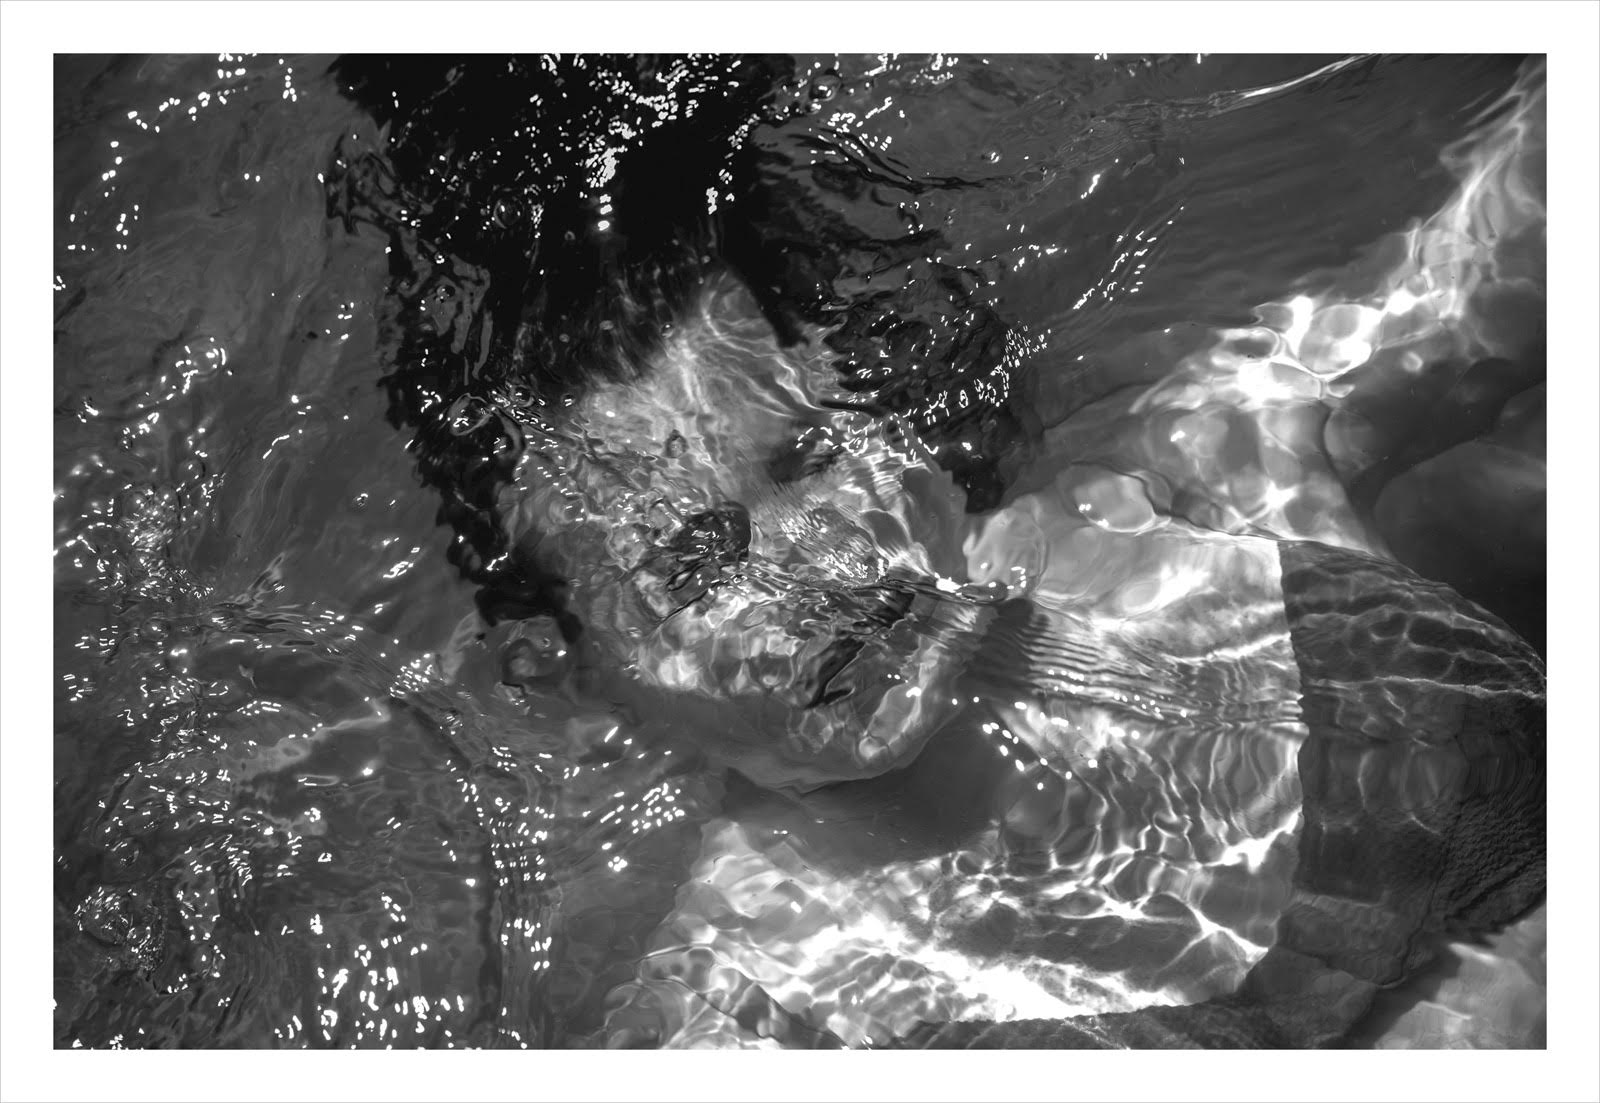 woman under water b and w #2